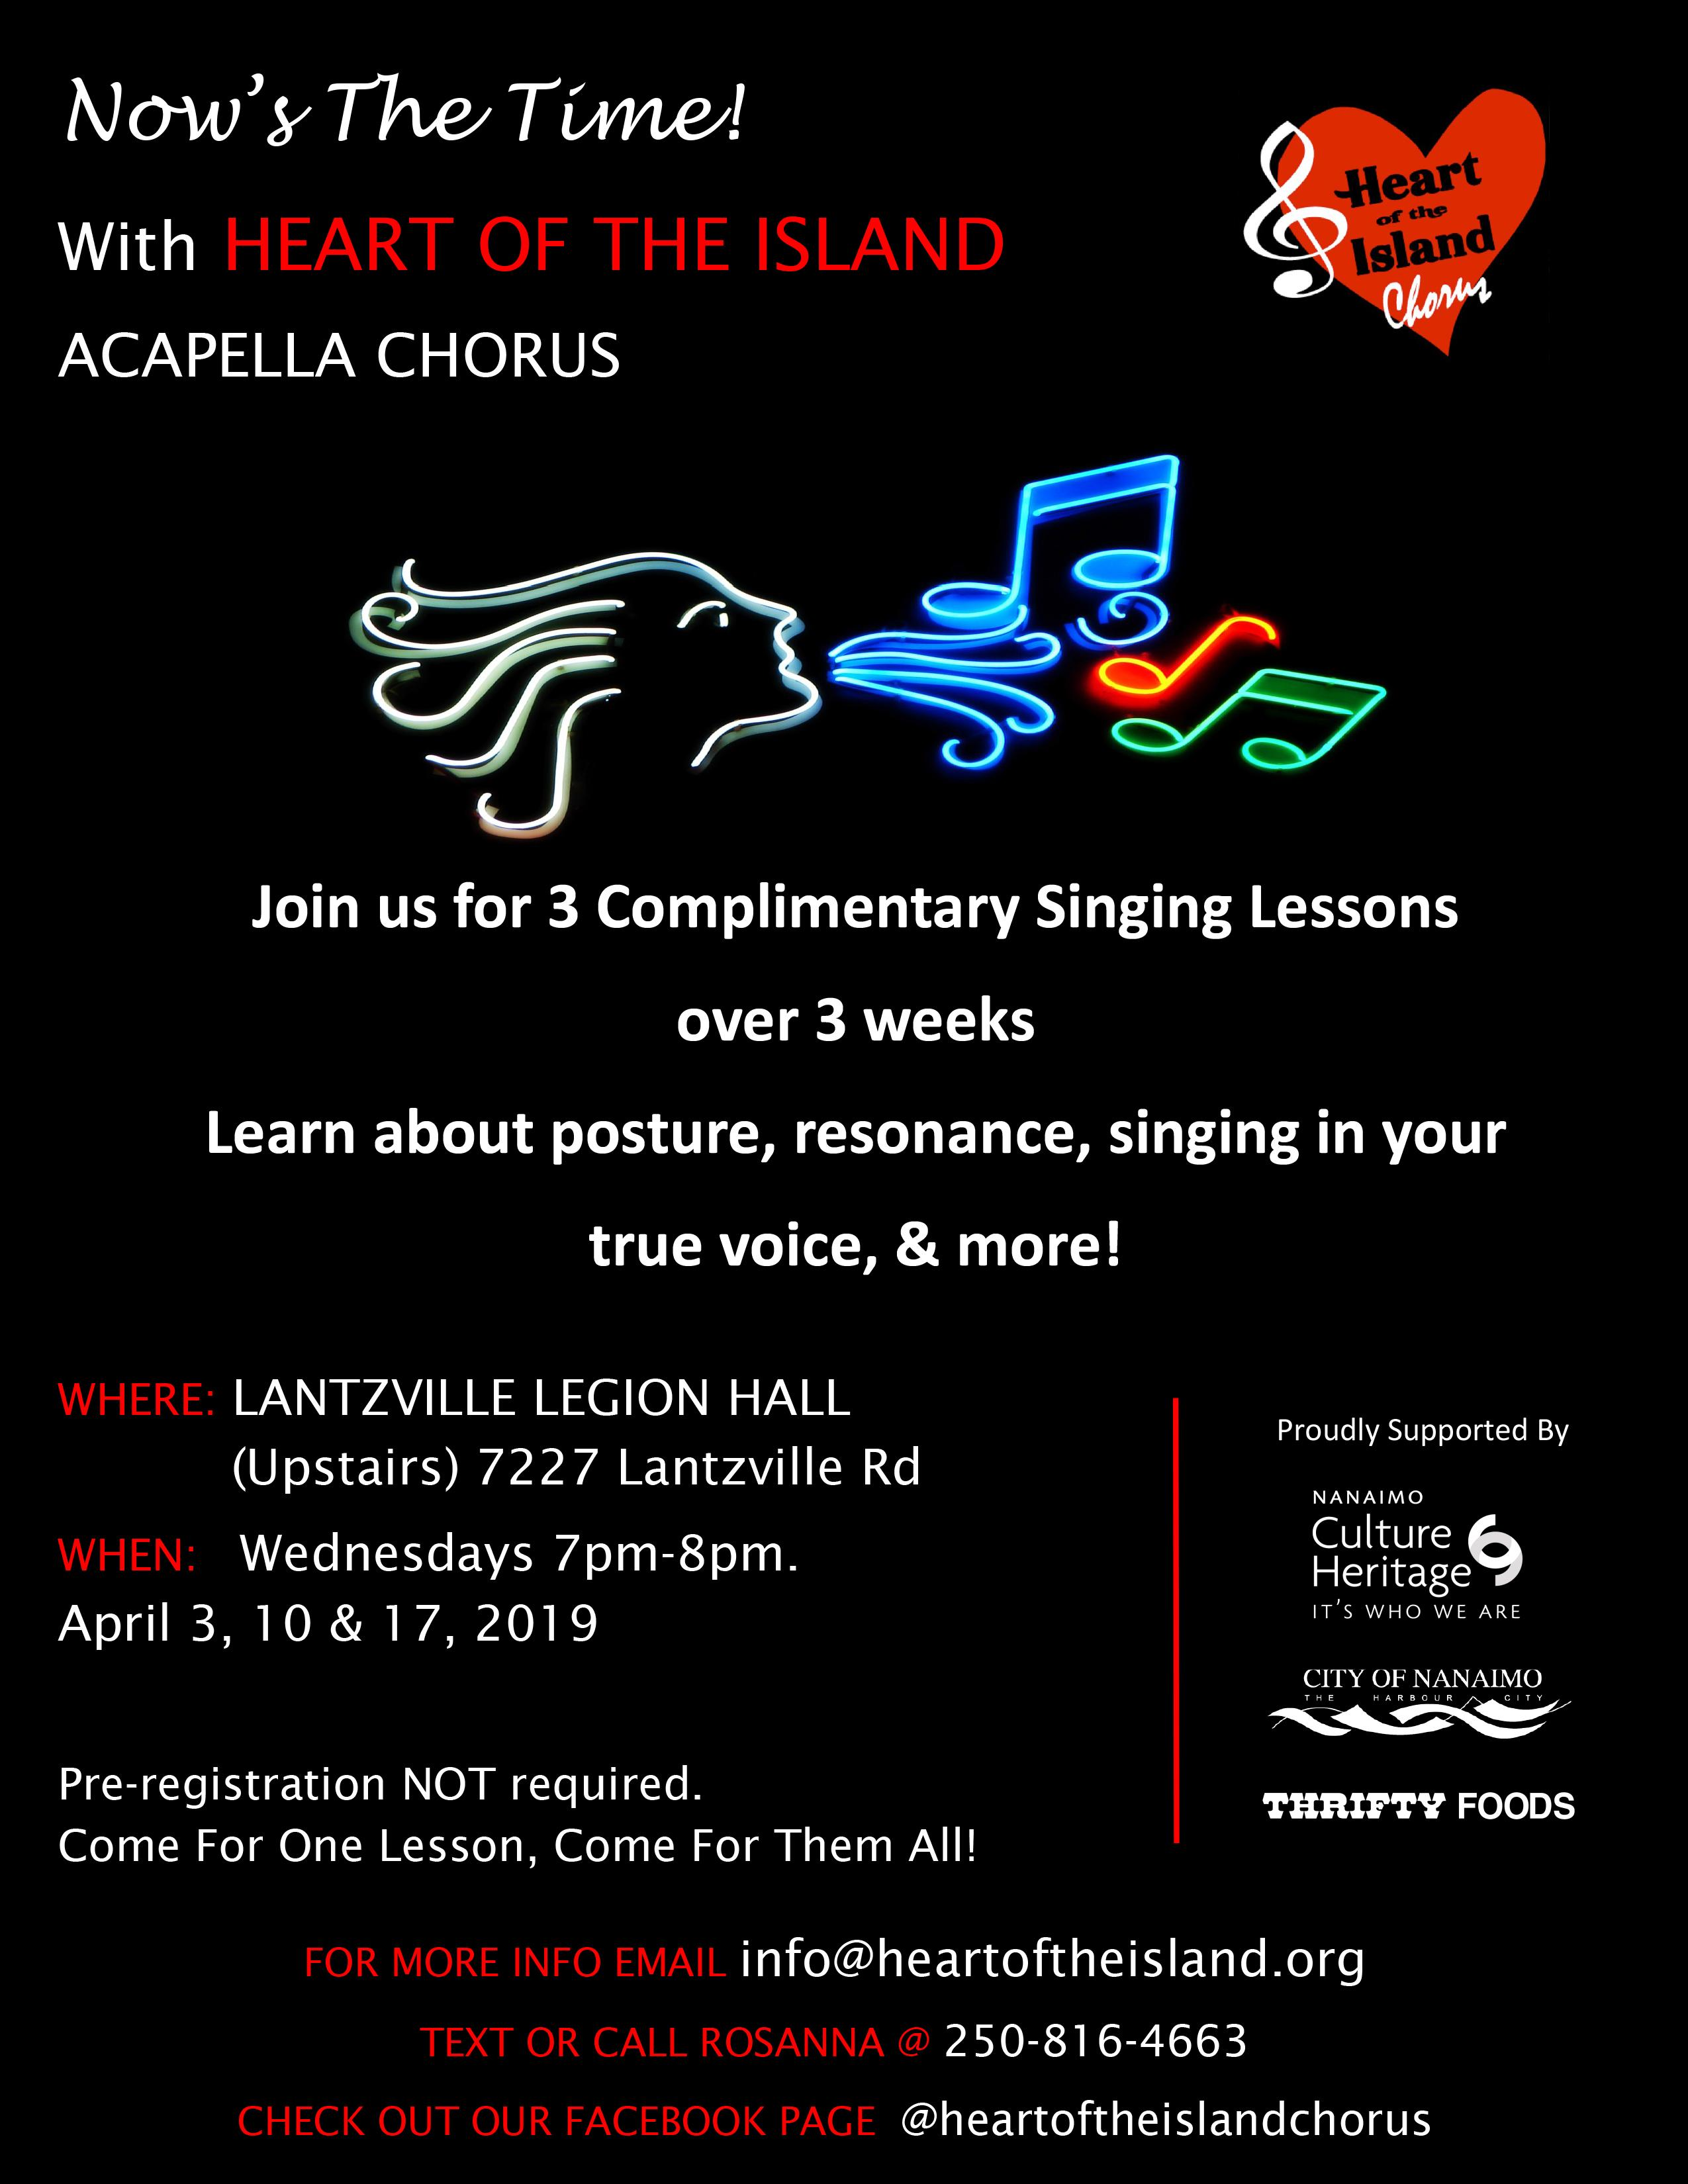 Now's The TIme! Free Singing Lessons